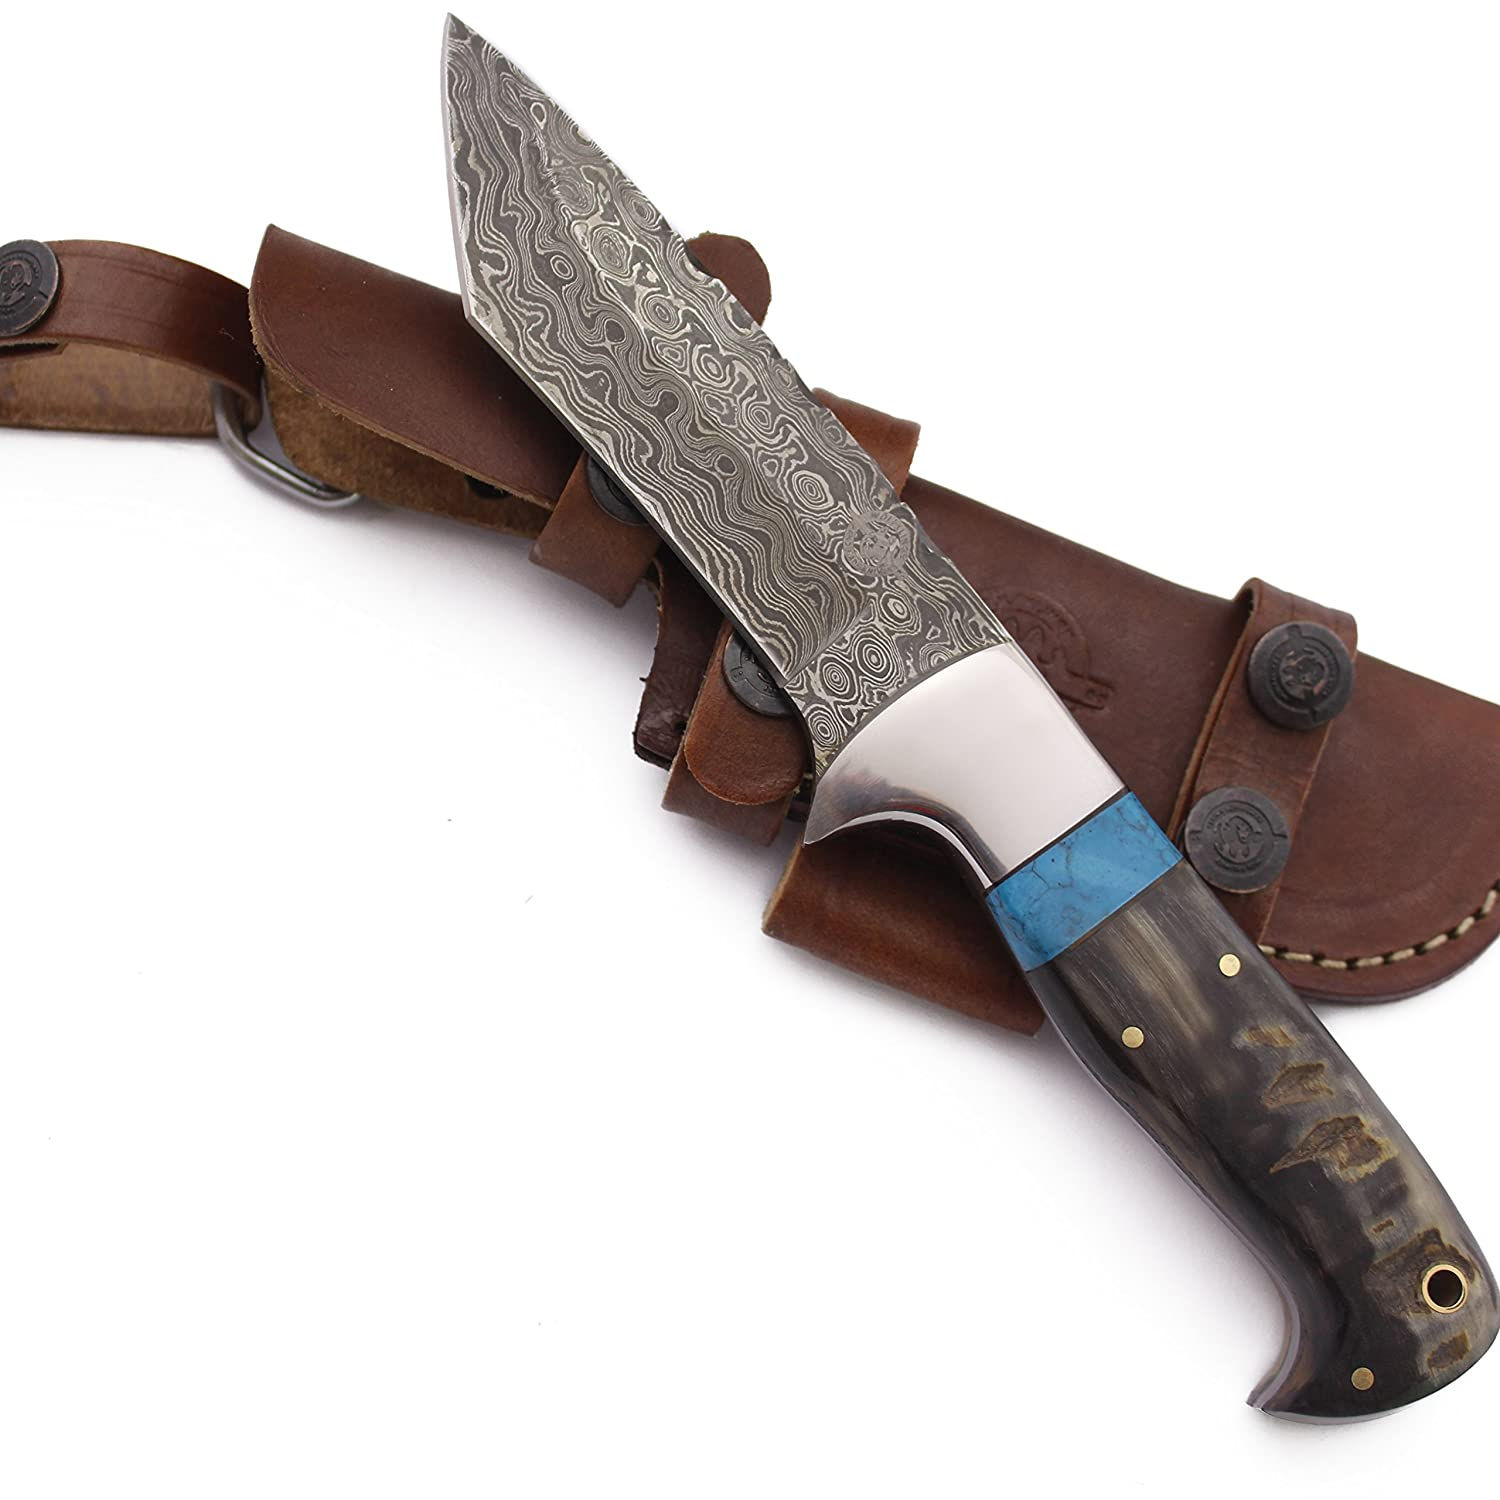 WolfKlinge DCX17-72 Handmade Damascus Steel Hunter, Sheep Horn Handle, with Cowhide Leather Sheath … Be the first to review this item hodxhg0900015